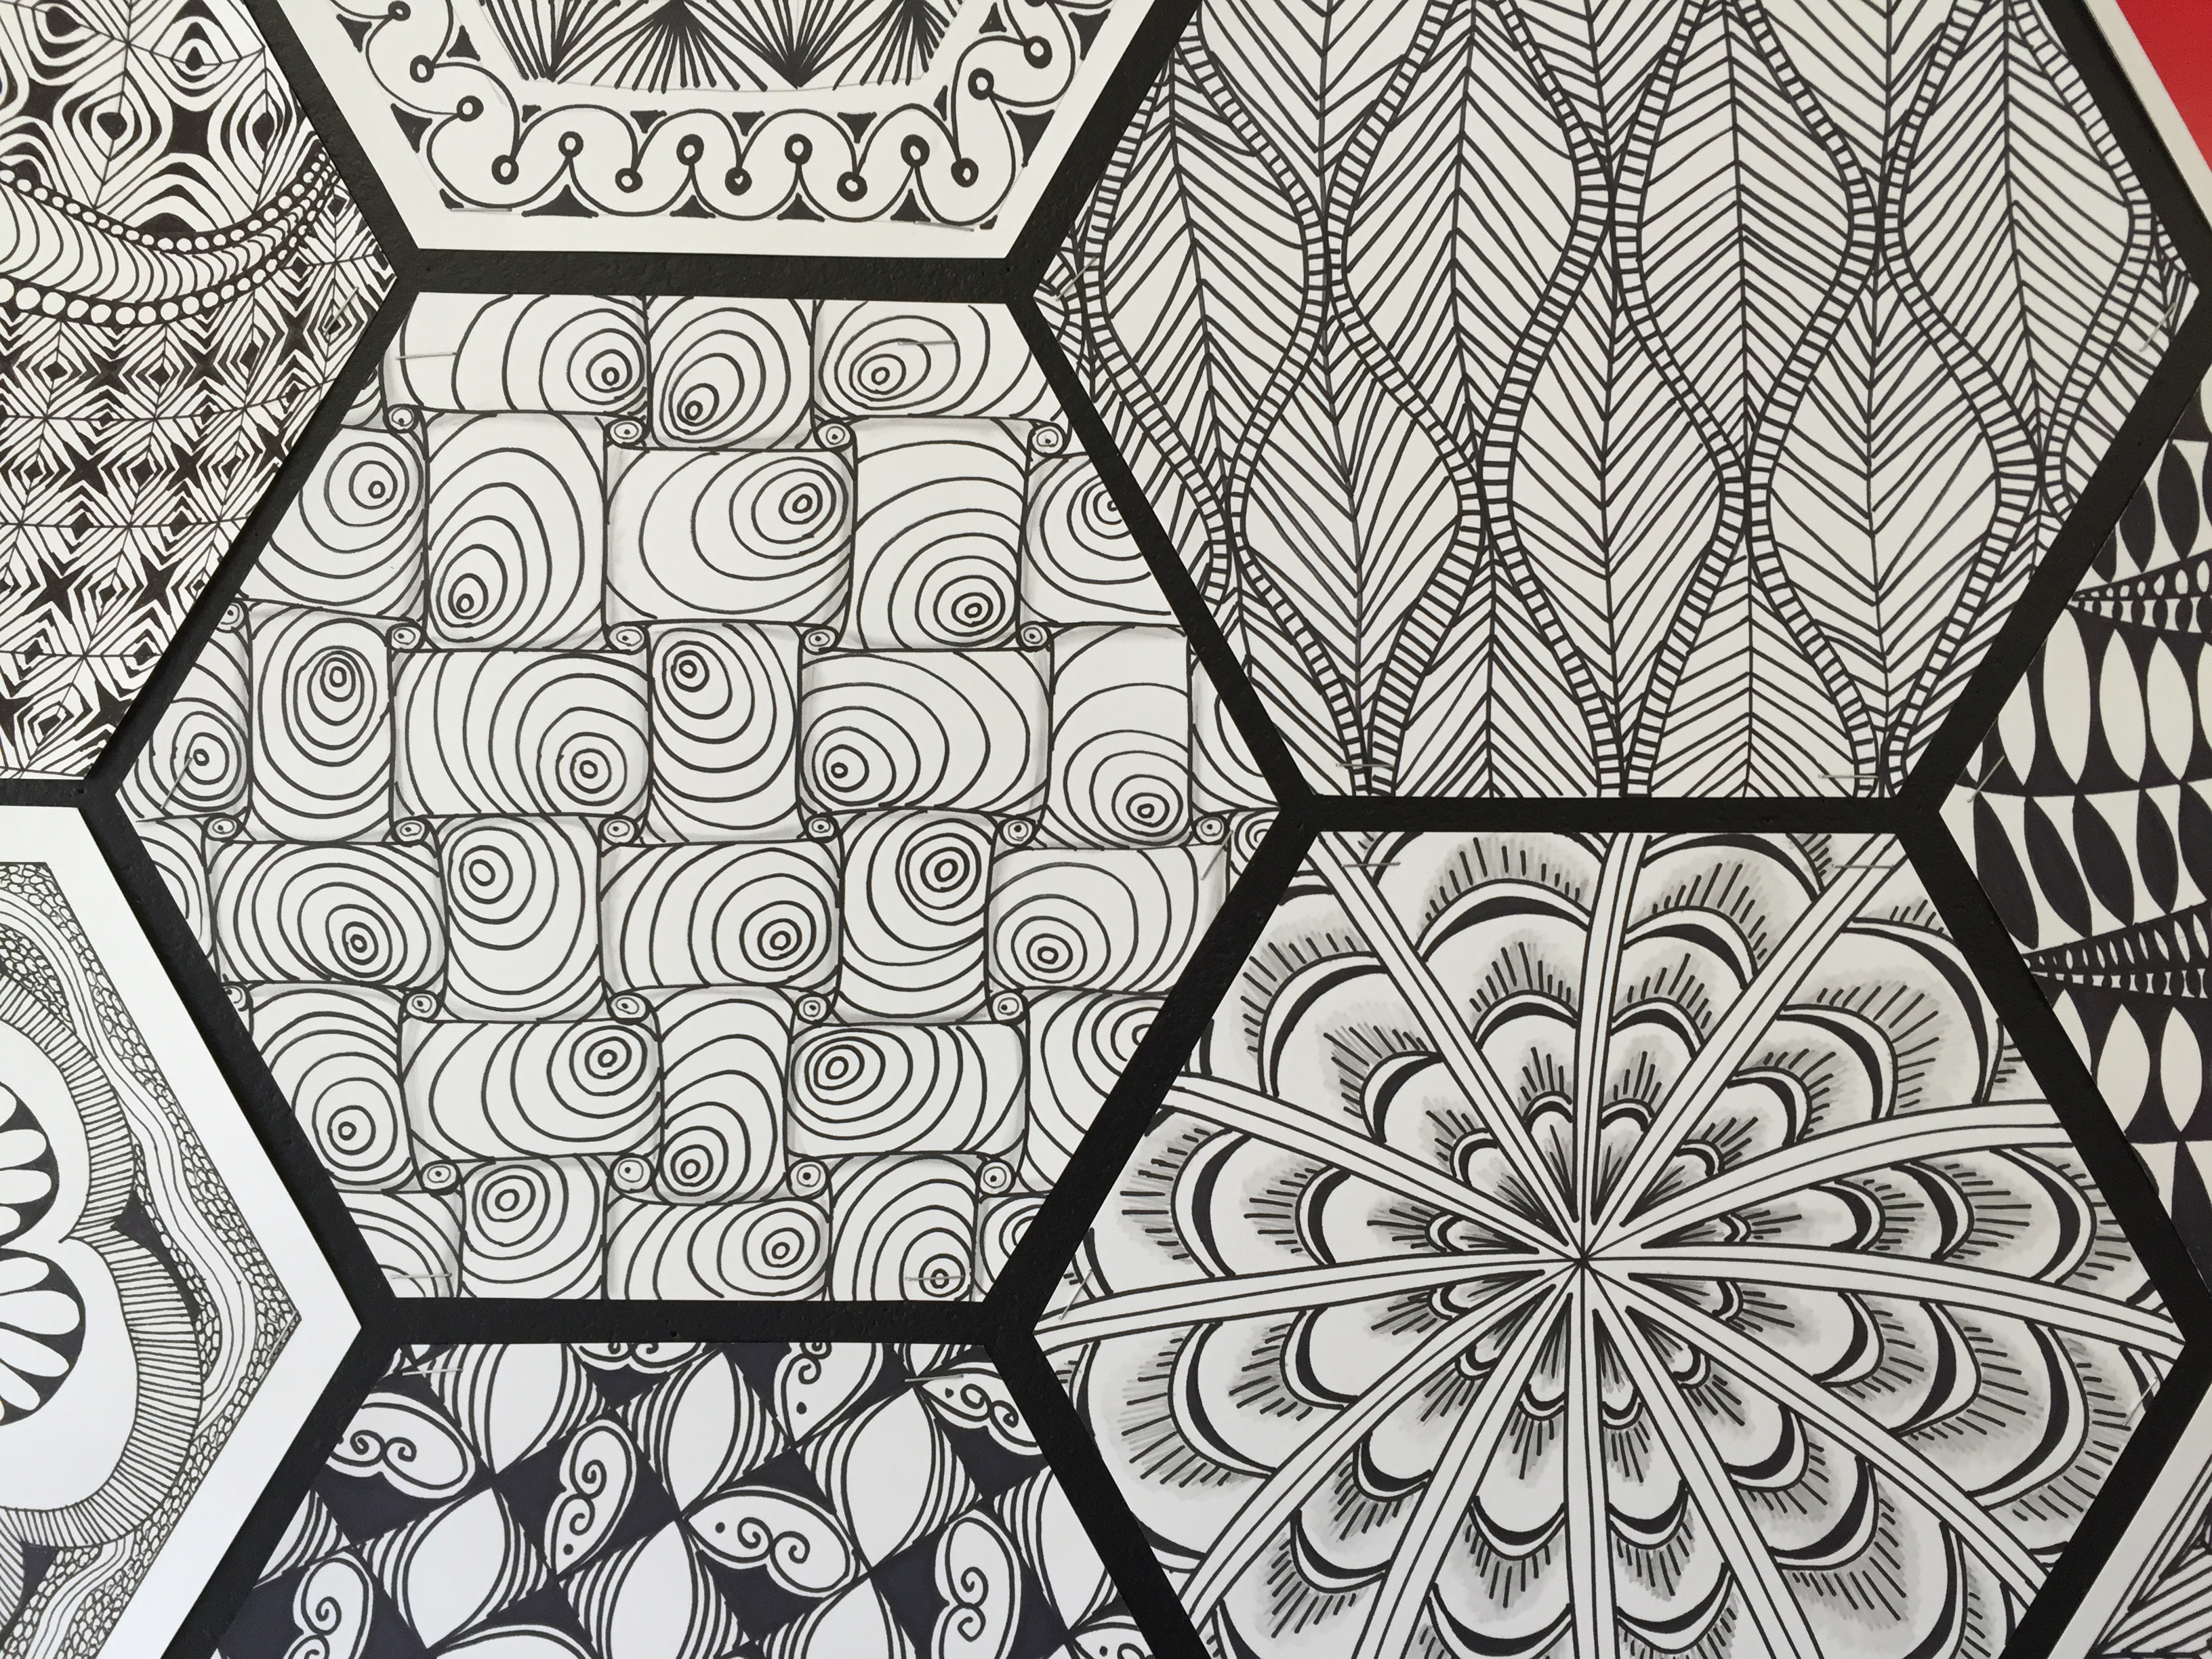 Zentangle-Inspired Workplace